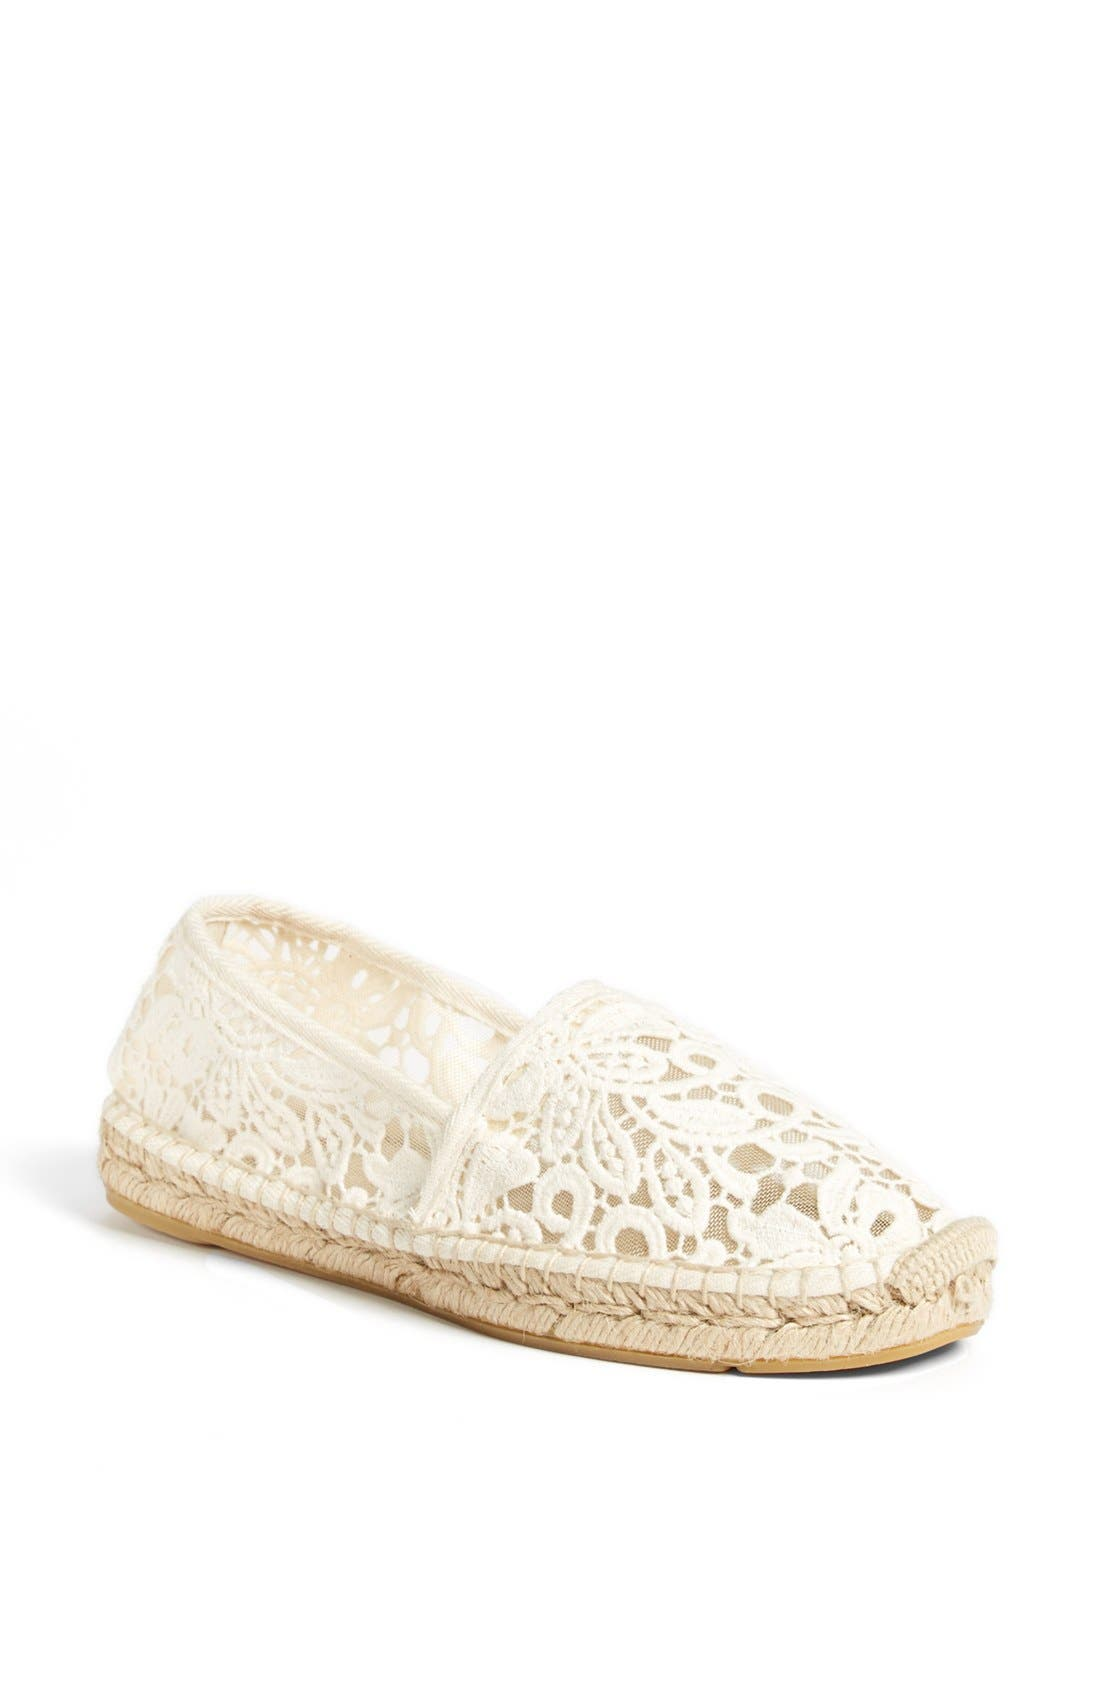 Alternate Image 1 Selected - Tory Burch 'Abbe' Espadrille